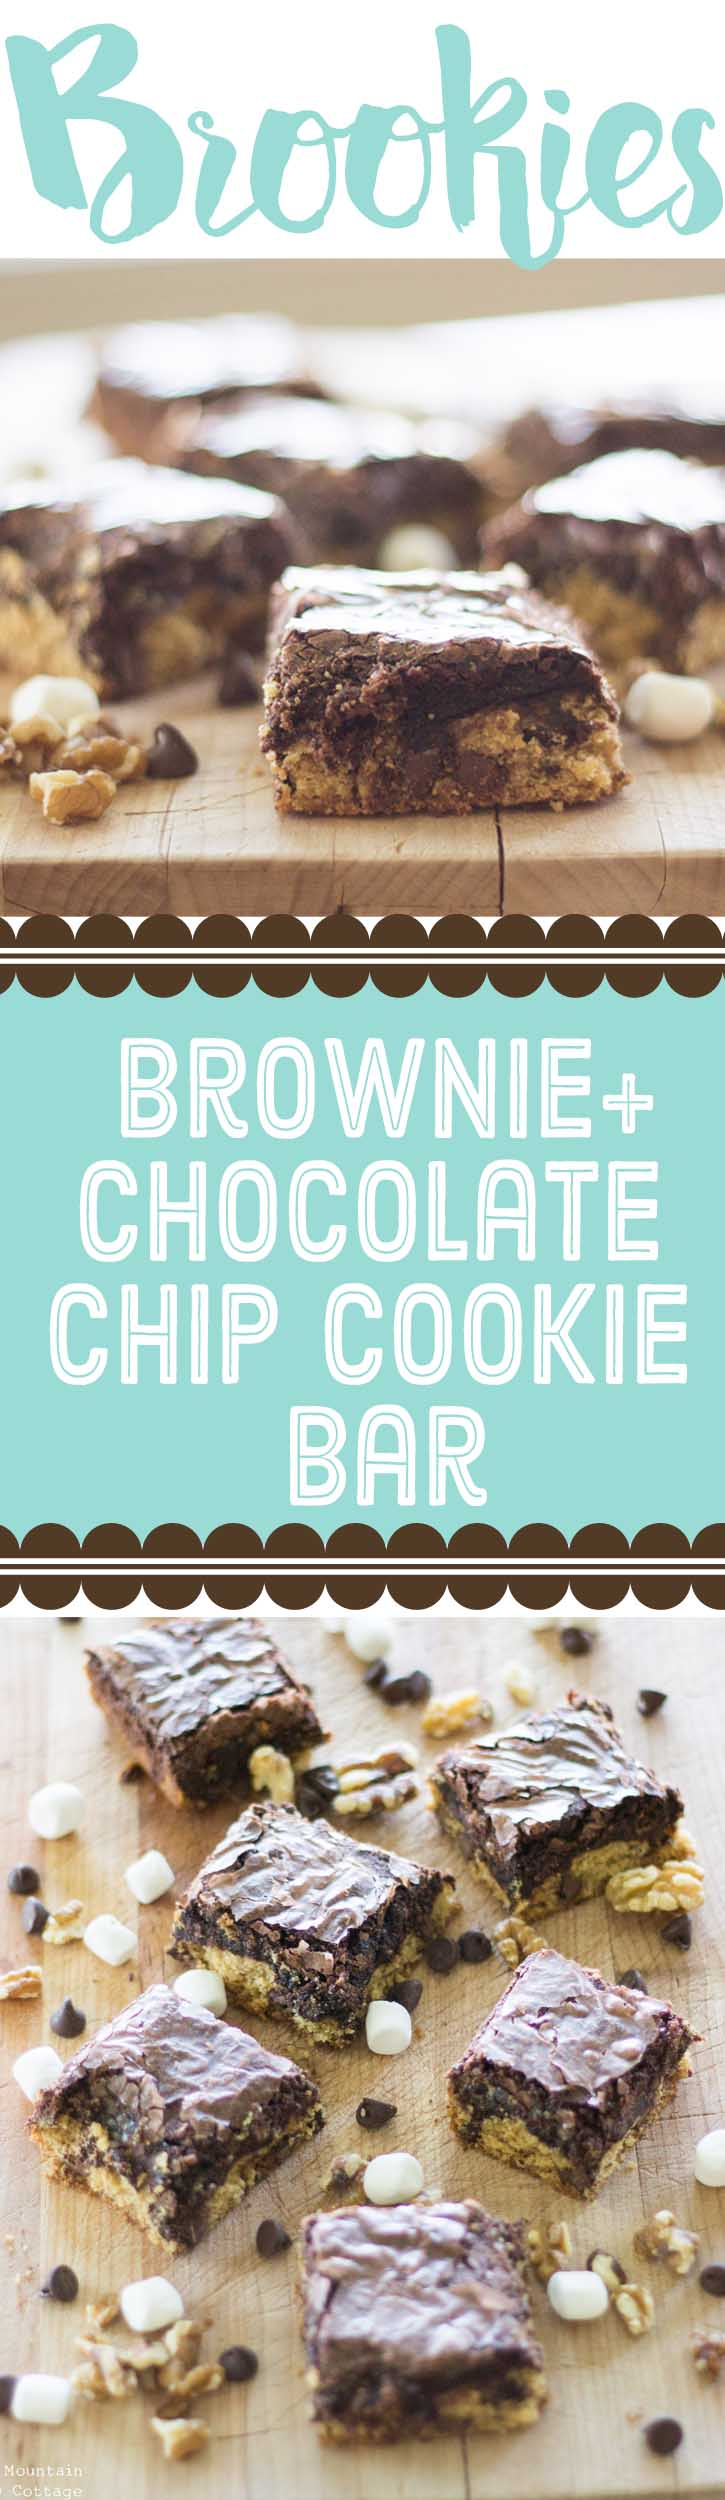 Brookie Recipe- Brownie+Chocolate Chip Cookie Bar